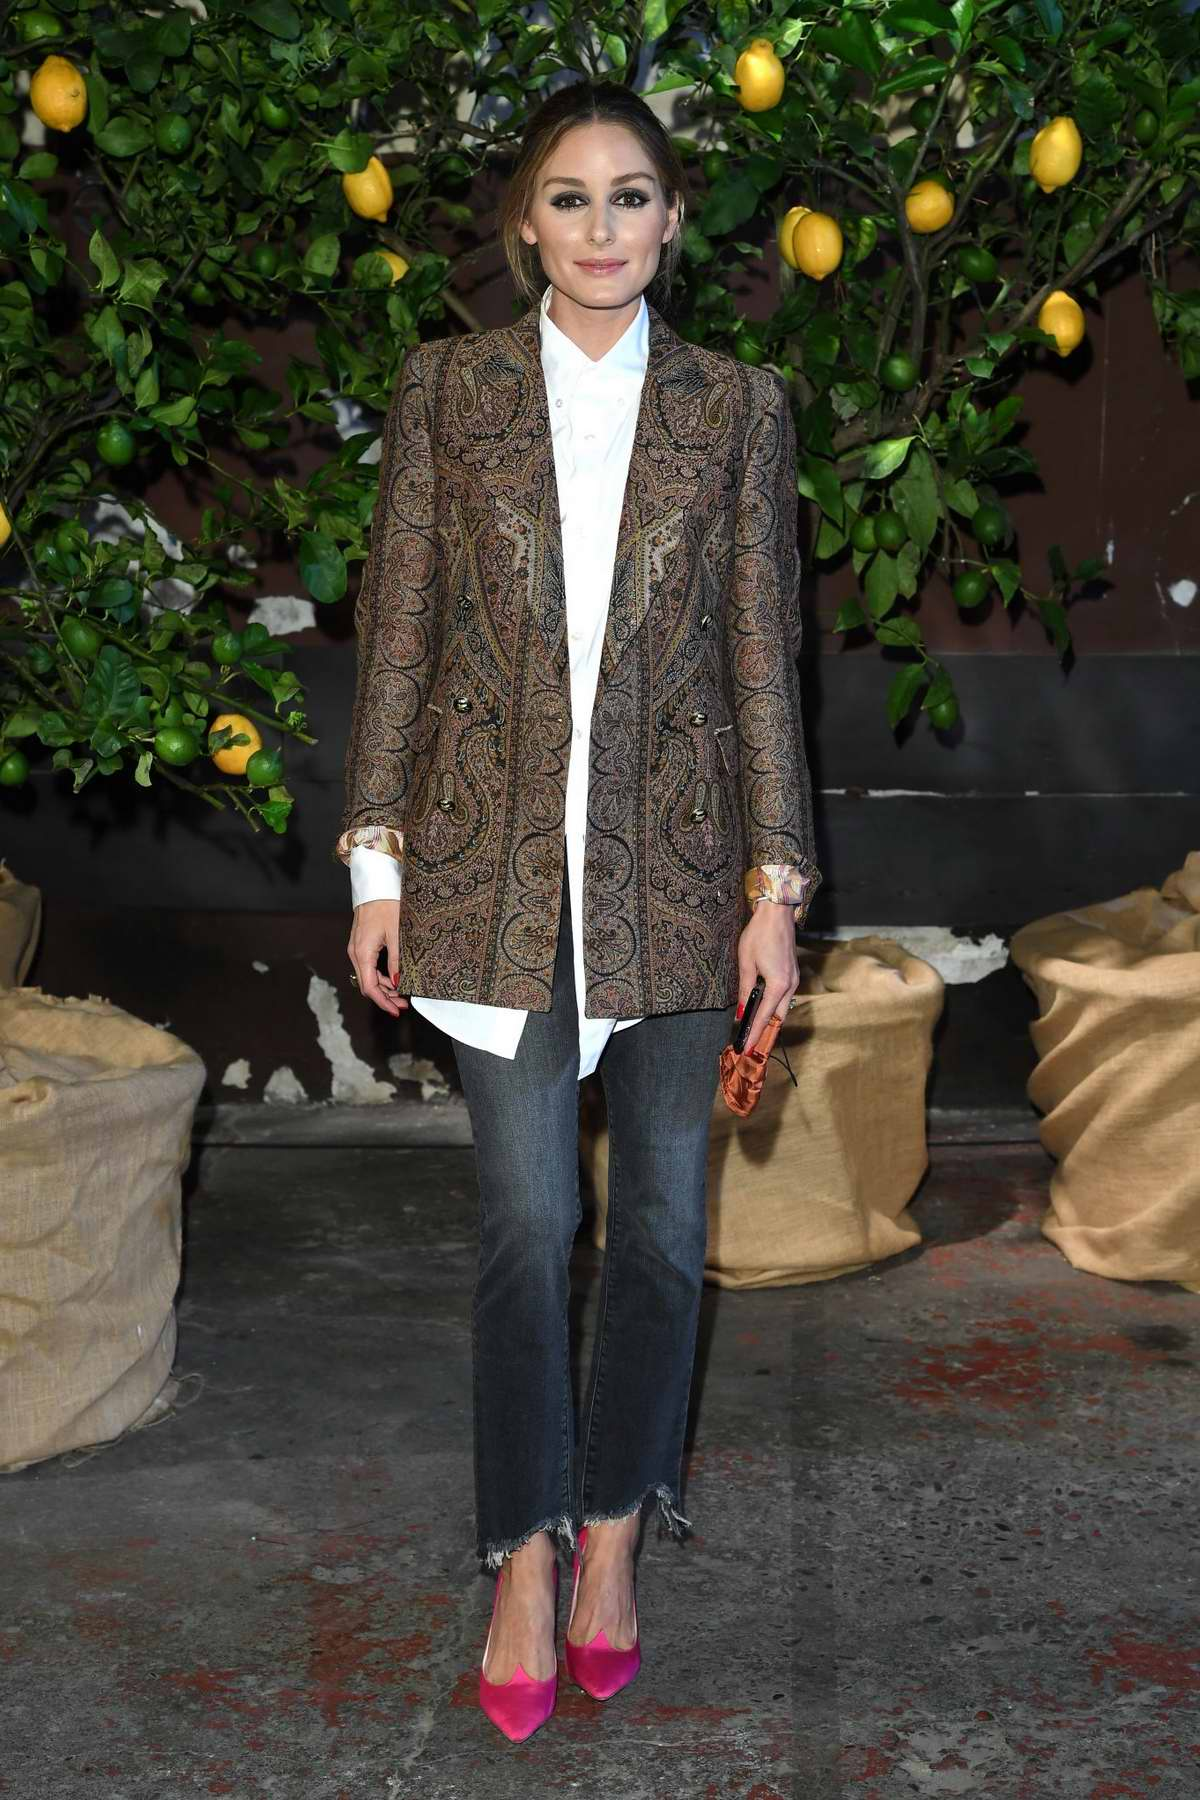 Olivia Palermo attends the Etro fashion show during the Milan Fashion Week in Milan, Italy